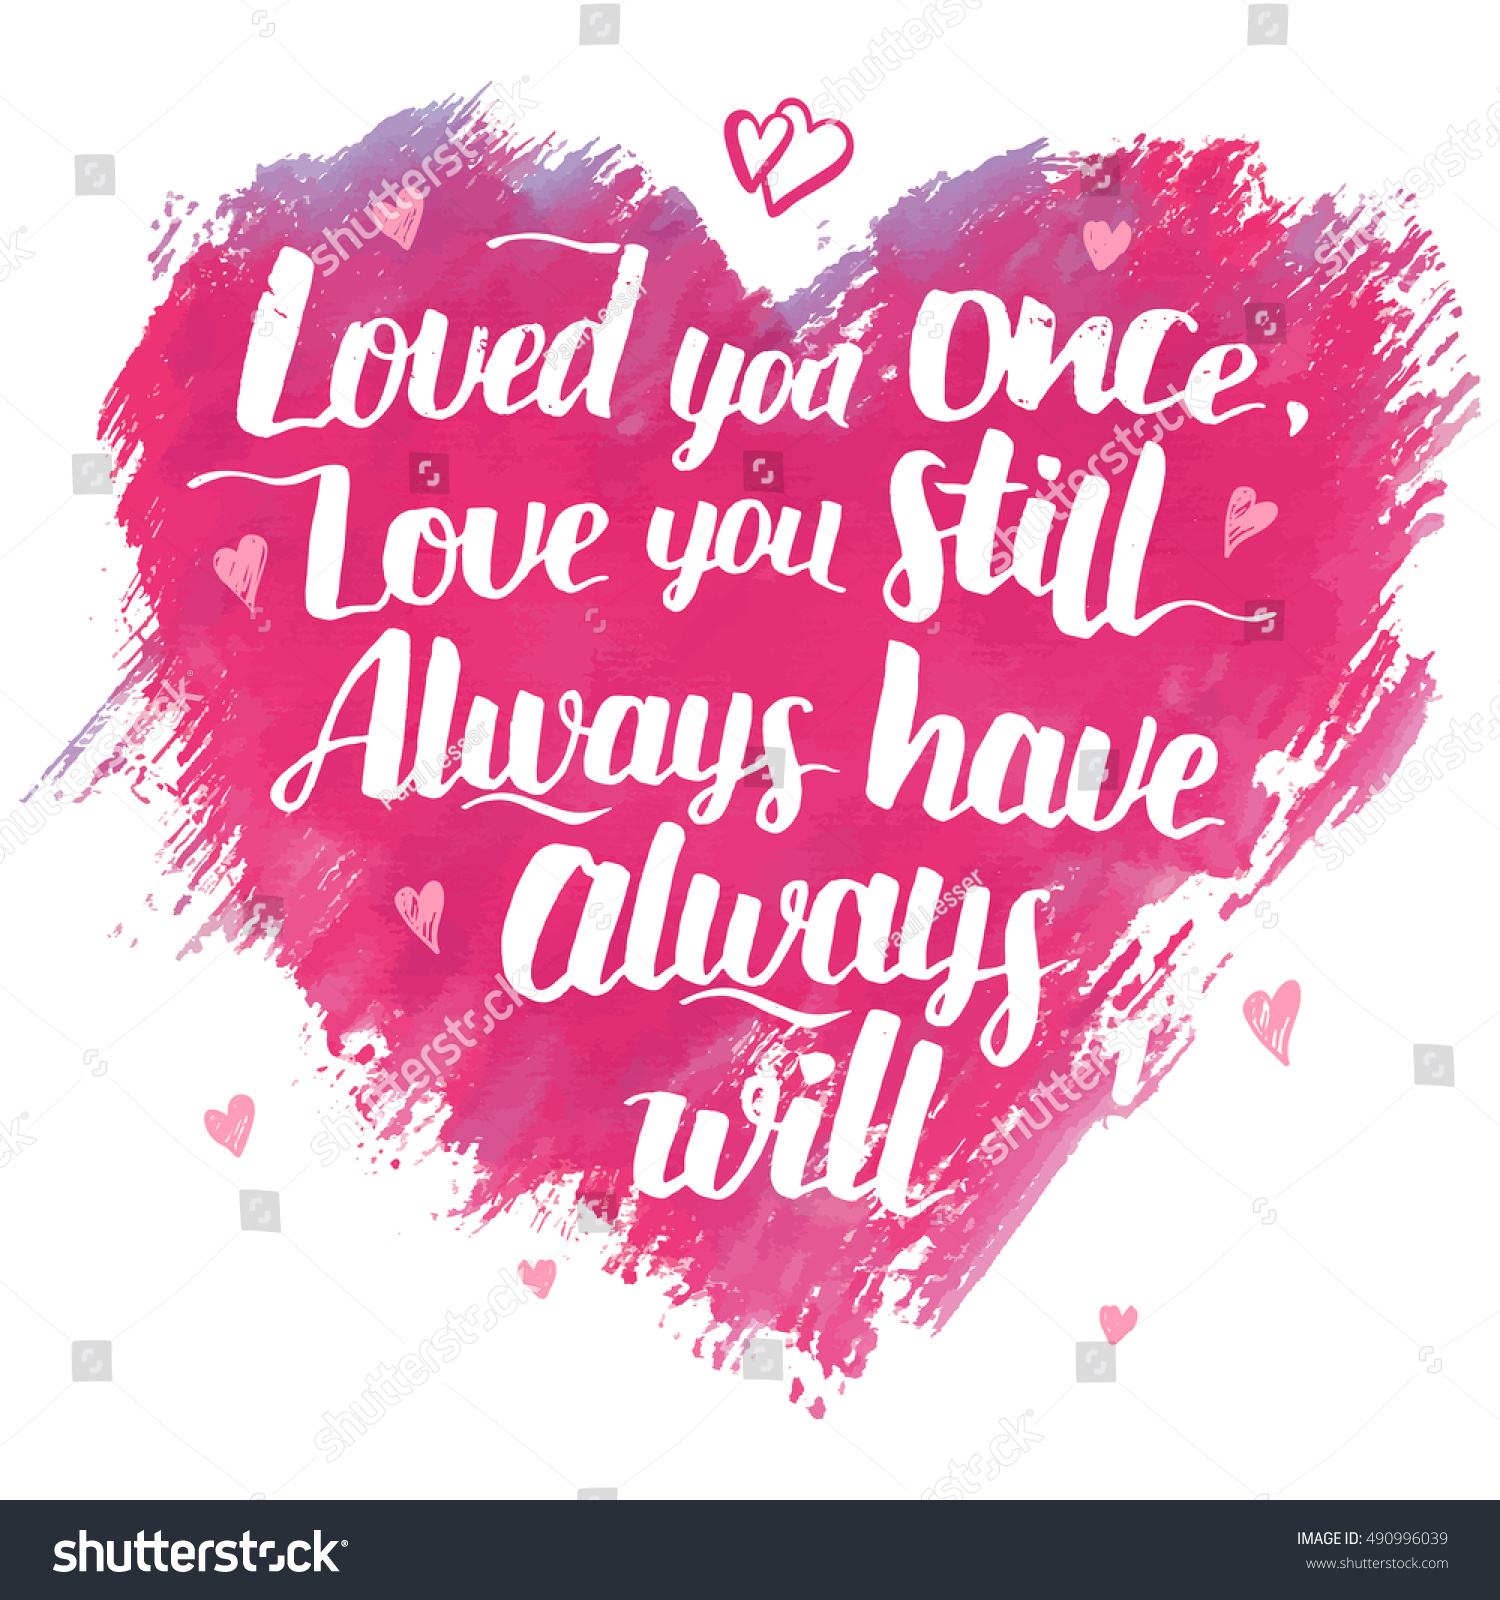 Love you once love you still Always have always will Brush calligraphy